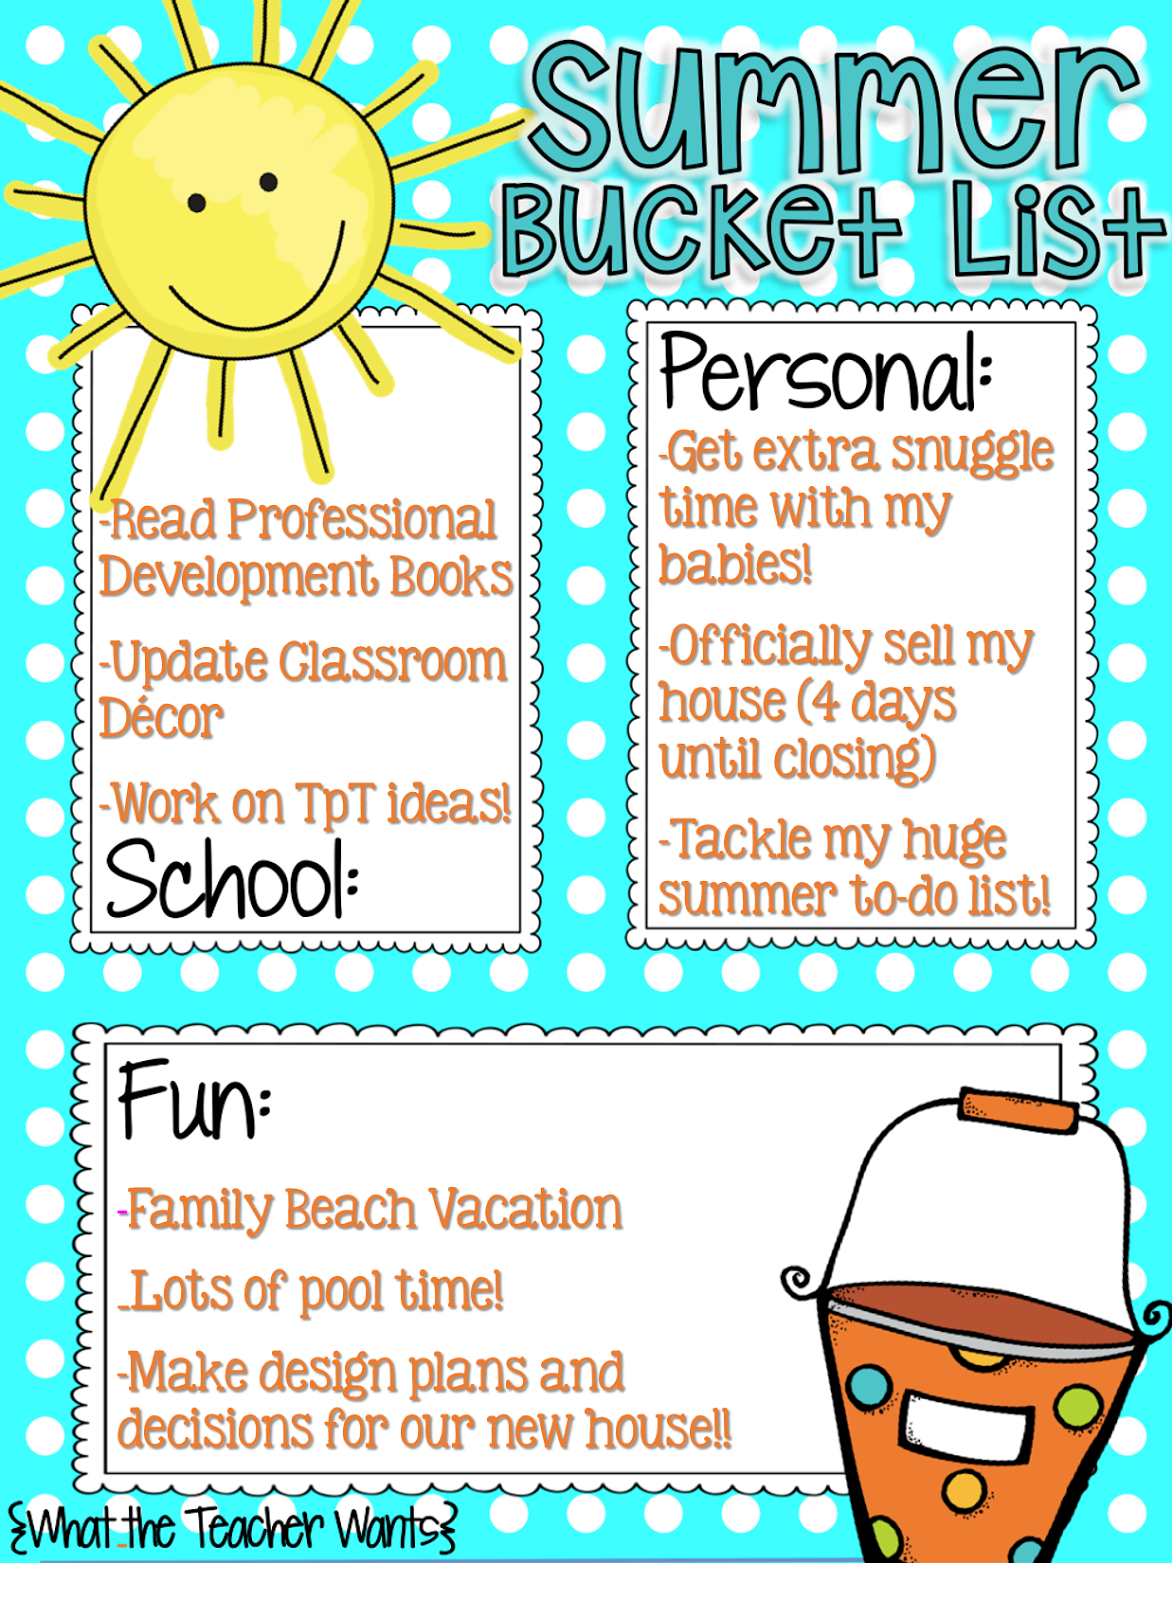 crazy for first grade summer bucket list lots of goals and must do things have already been checked off my bucket list but 6 more weeks to go i still have many more things i want to